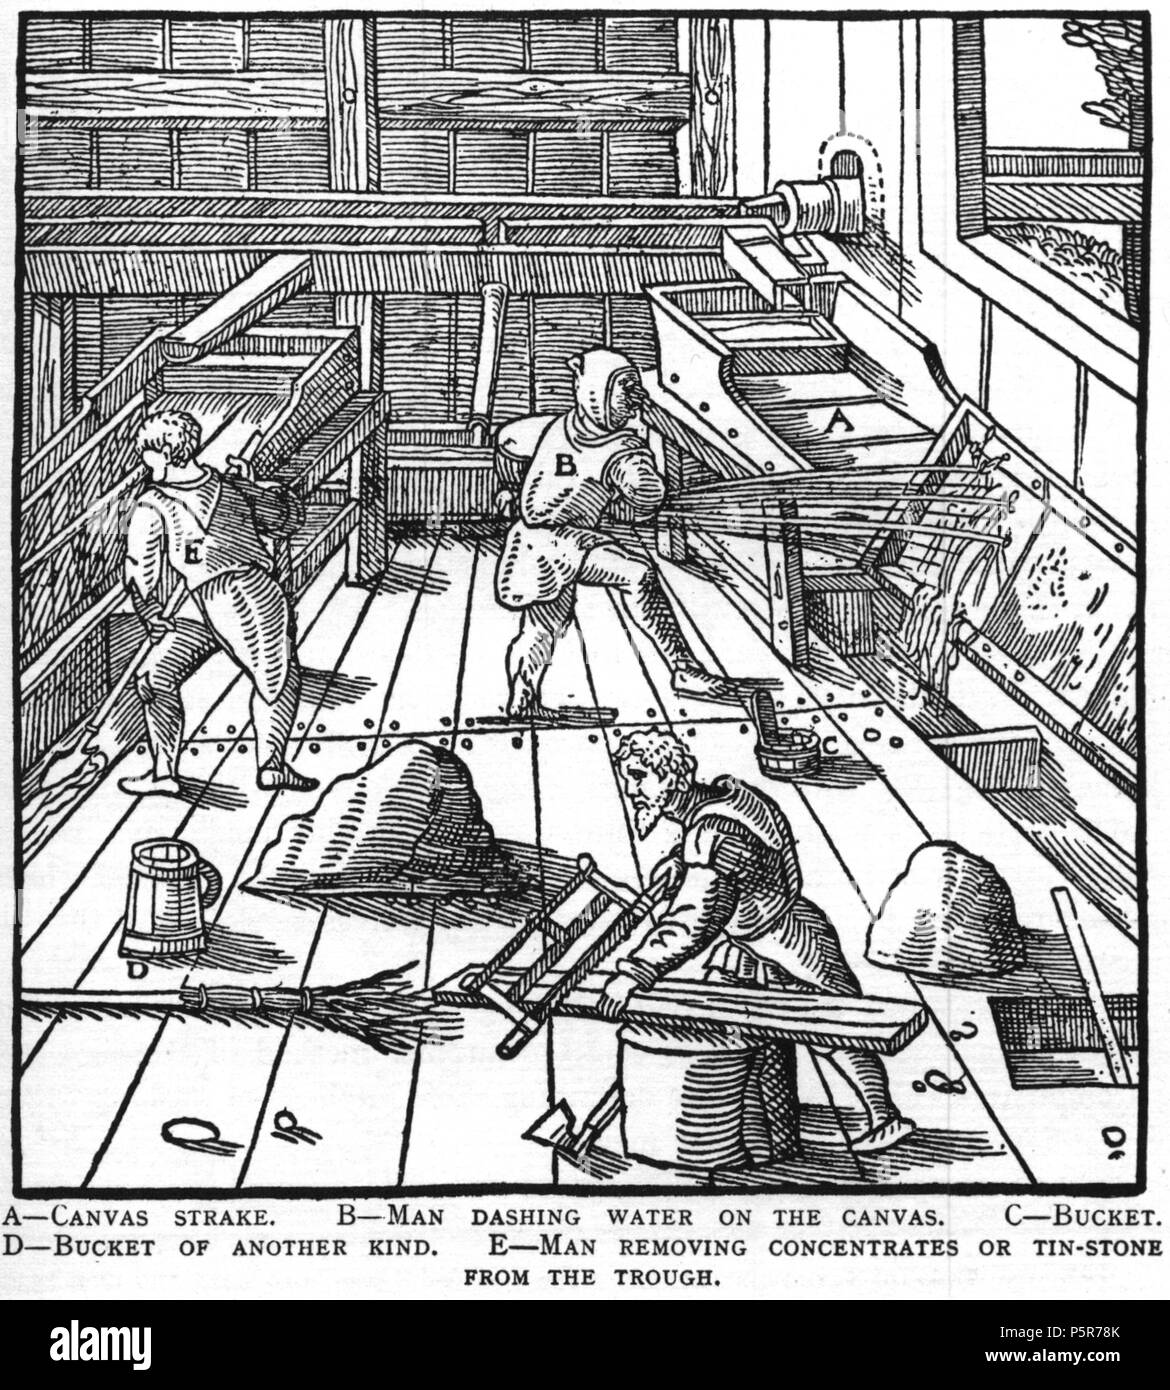 N/A. Woodcut illustration from De re metallica by Georgius Agricola. This is a 300dpi scan from the 1950 Dover edition of the 1913 Hoover translation of the 1556 reference. The Dover edition has slightly smaller size prints than the Hoover (which is a rare book). The woodcuts were recreated for the 1913 printing. Filenames (except for the title page) indicate the chapter (2, 3, 5, etc.) followed by the sequential number of the illustration. 2 May 2005, 07:13:08. TCO (talk) 223 Book8-30 - Stock Image